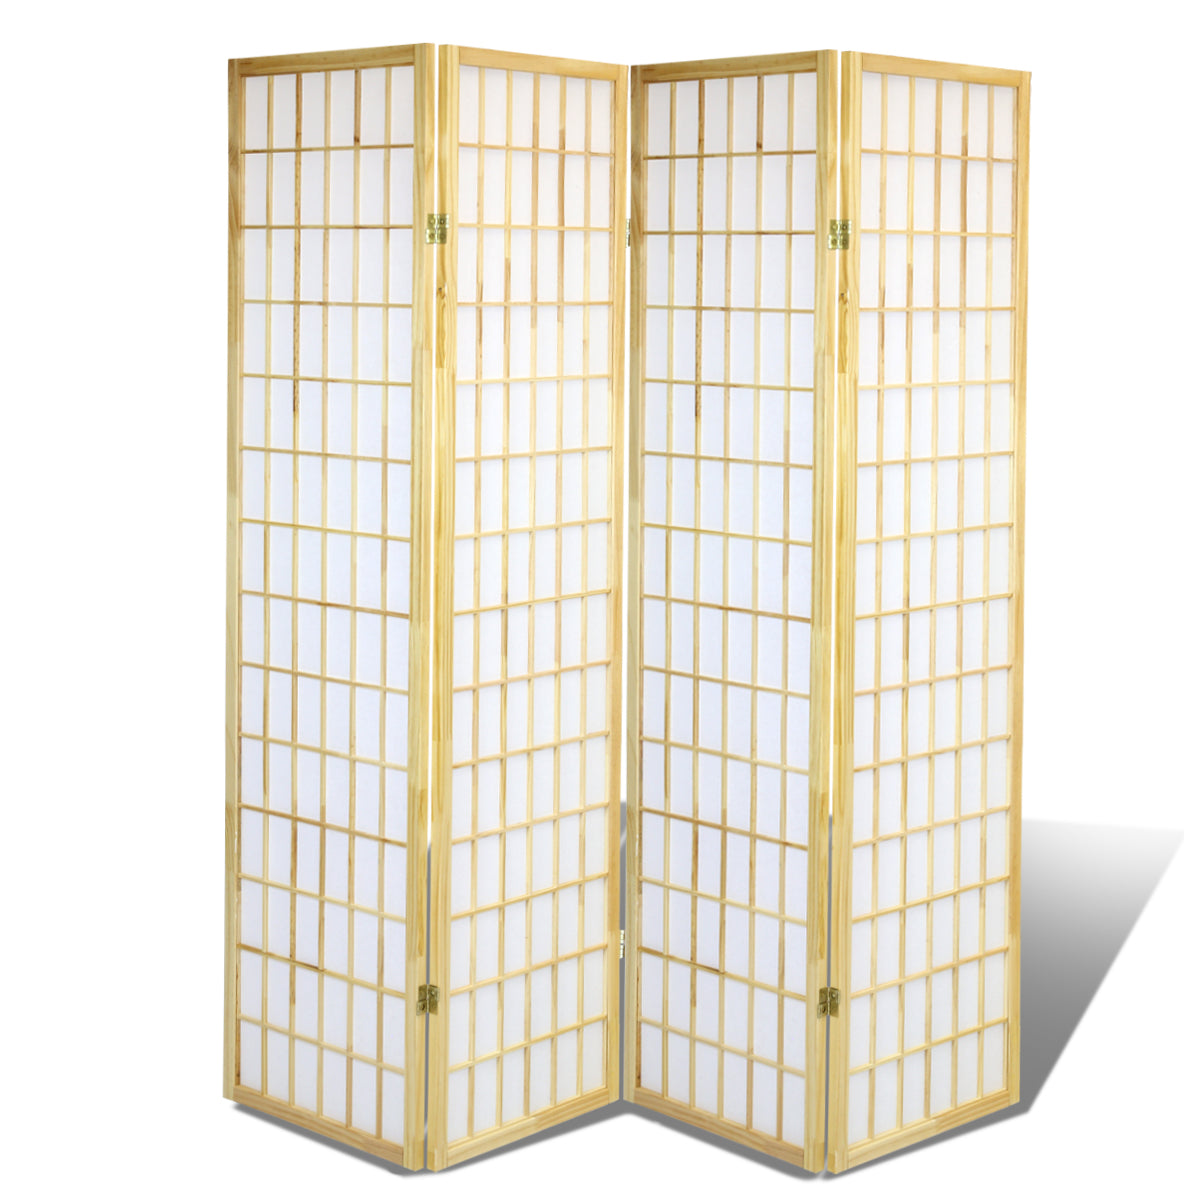 4 Panels Oriental Folding Room Divider Screen Hardwood Shoji Screen Room Separator Partition Wall